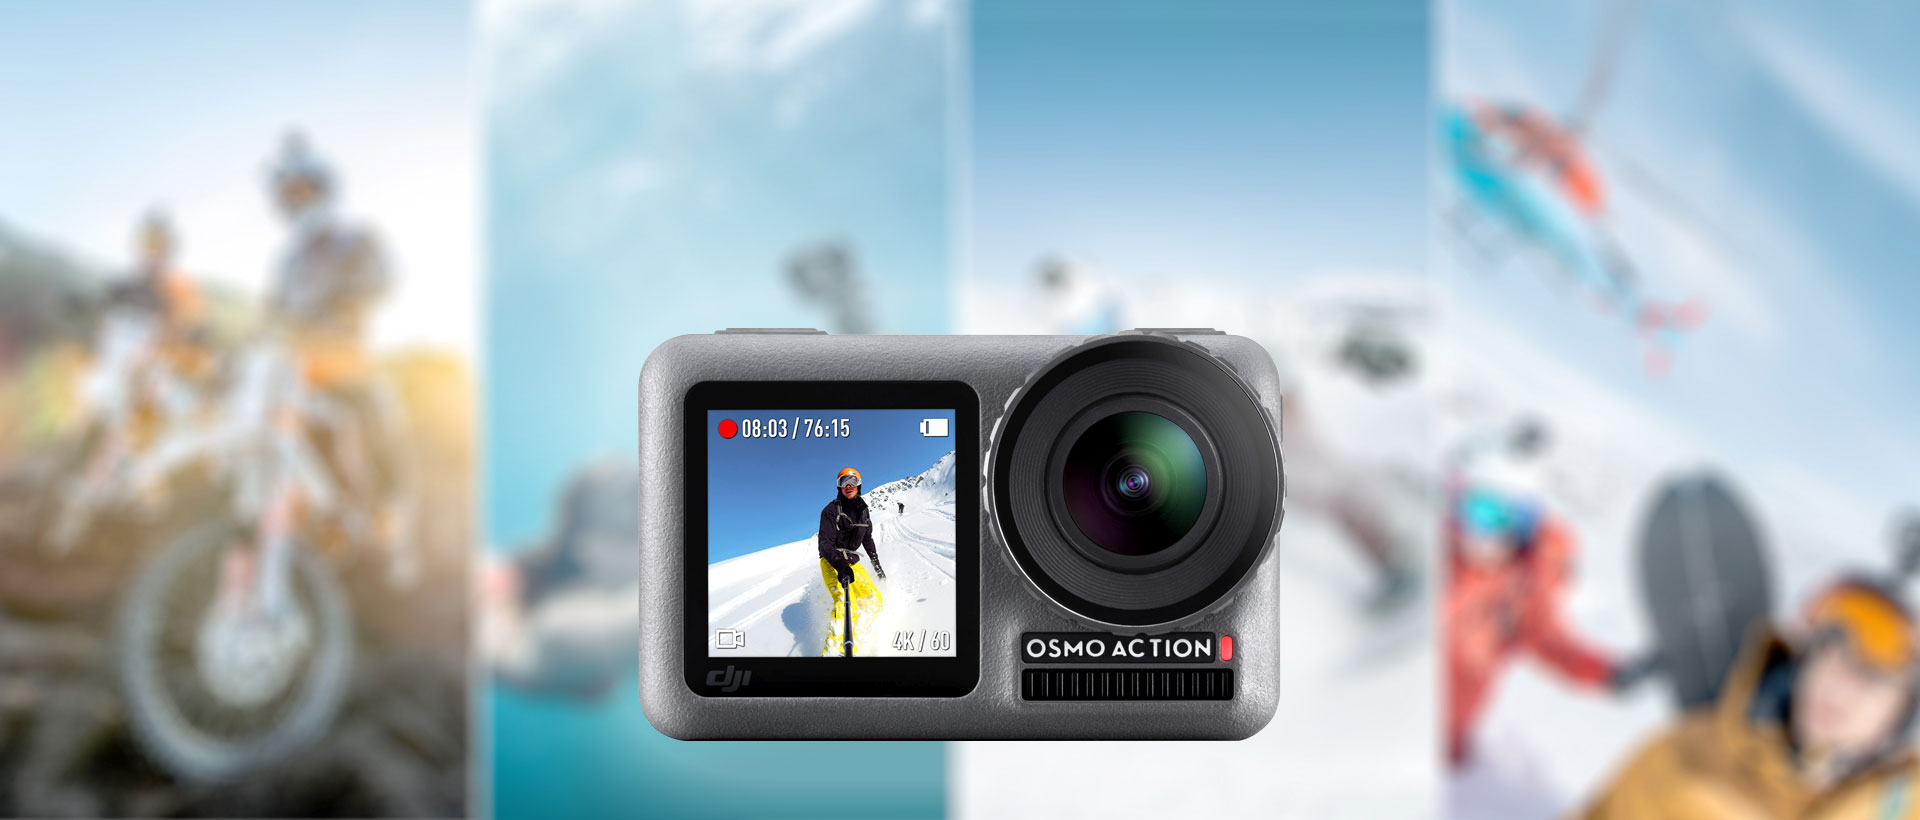 Unleash your other side with Osmo Action!